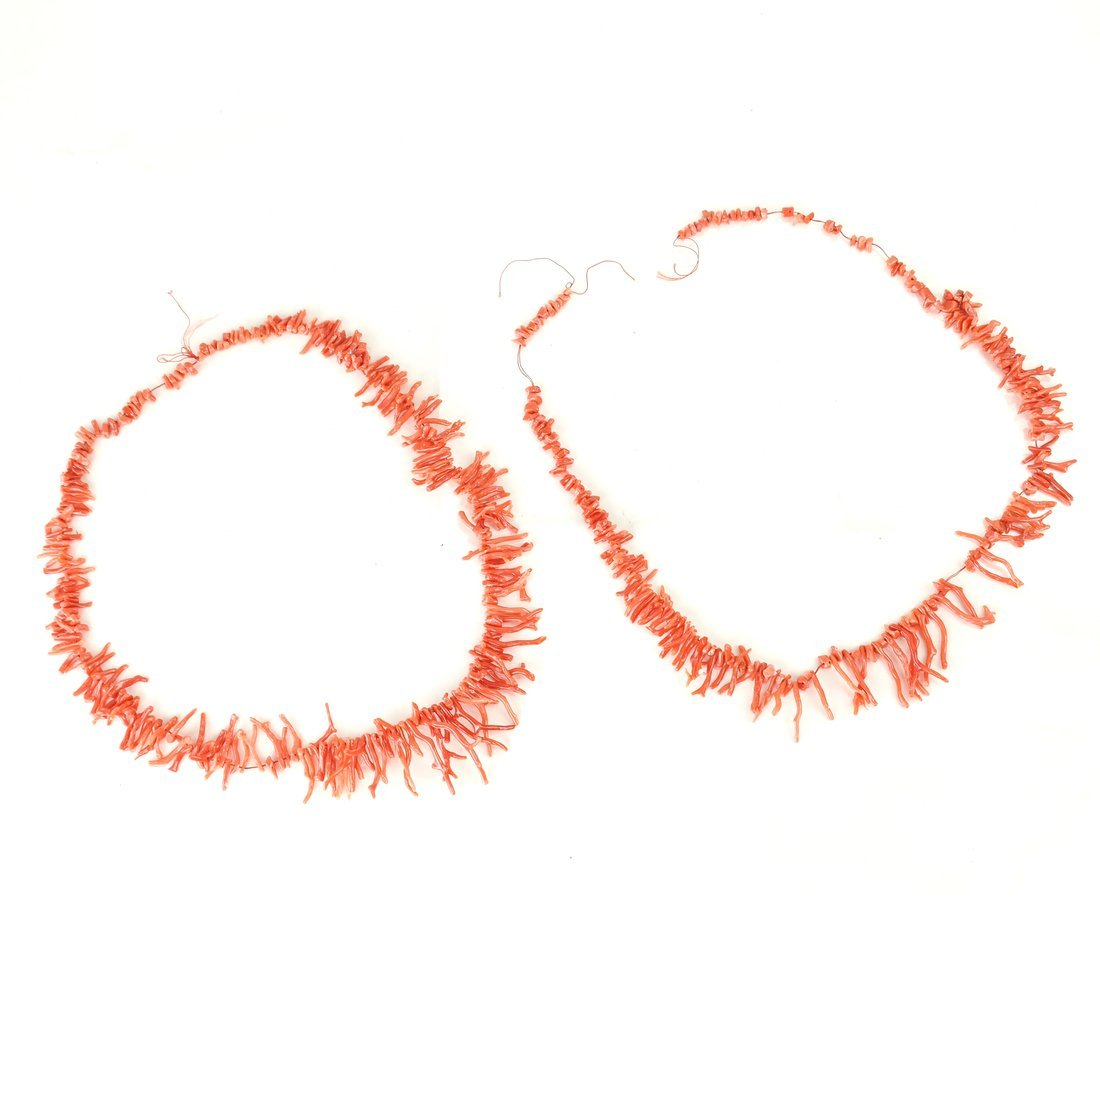 Two Strands of Oxblood Branch Coral - 5